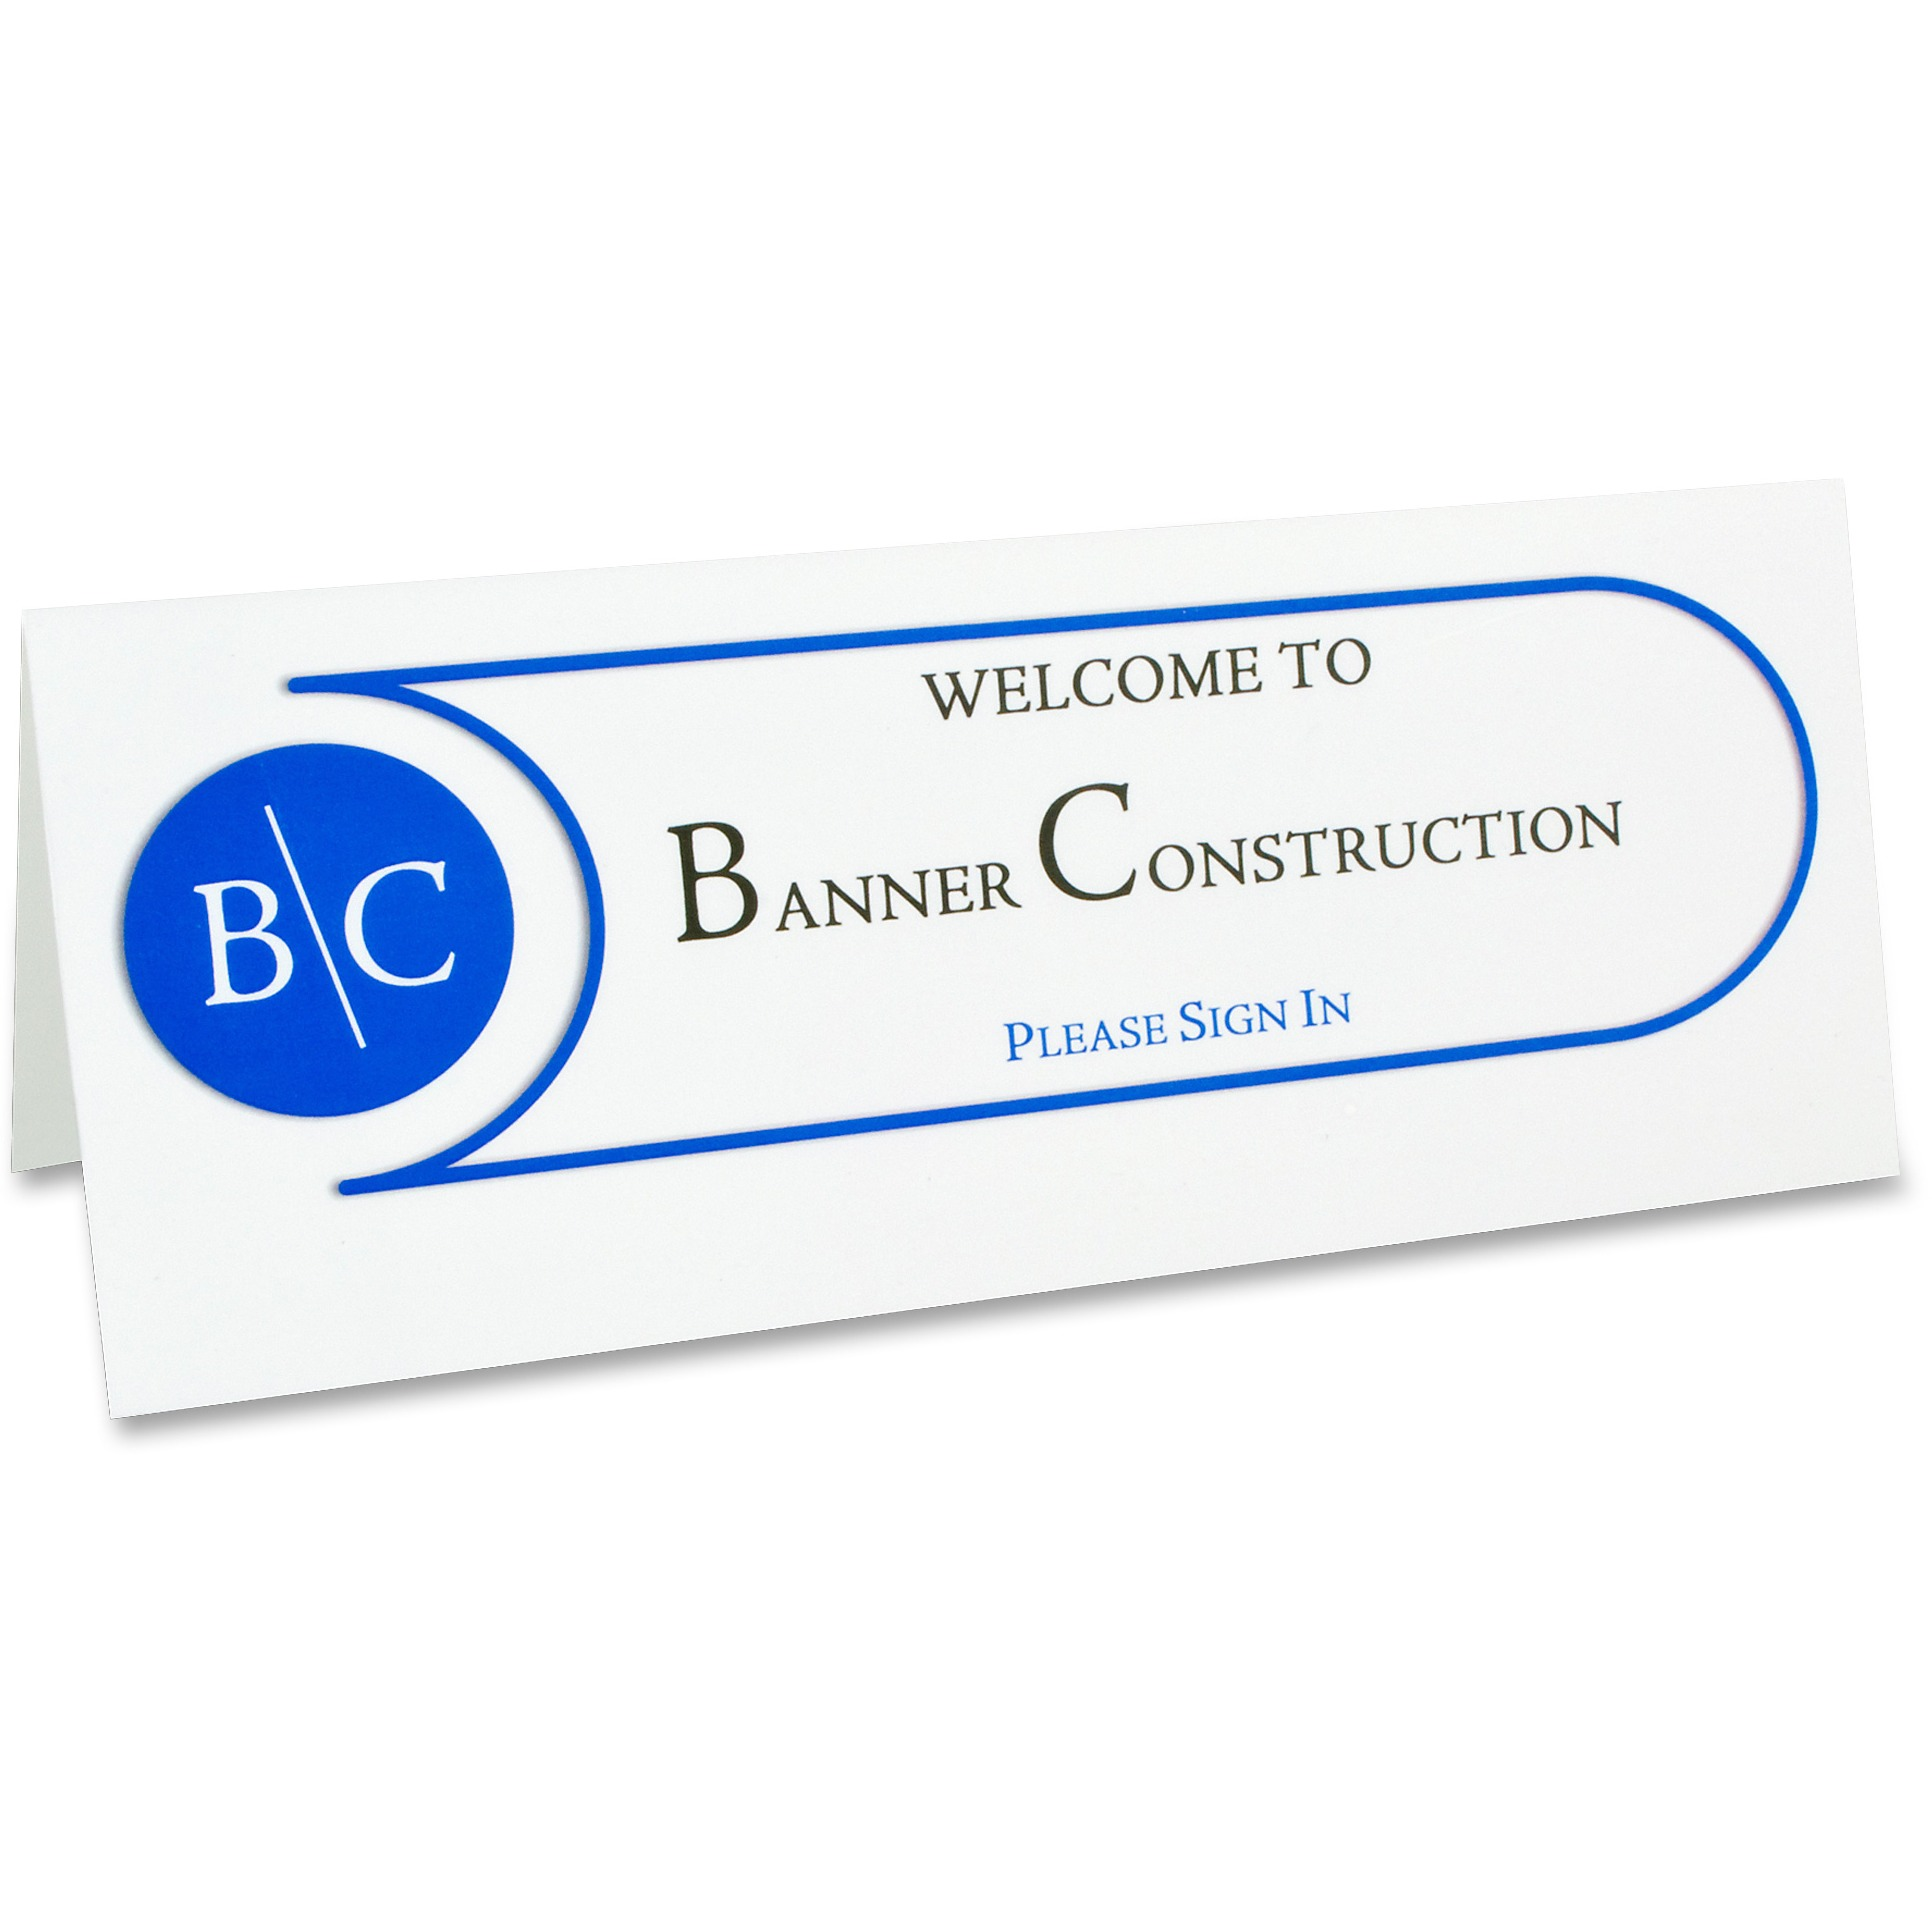 """C-Line Printer-Ready Name Tent Cards, 4-1/4"""" x 11"""", White Cardstock, 50 Letter Sheets/Box"""